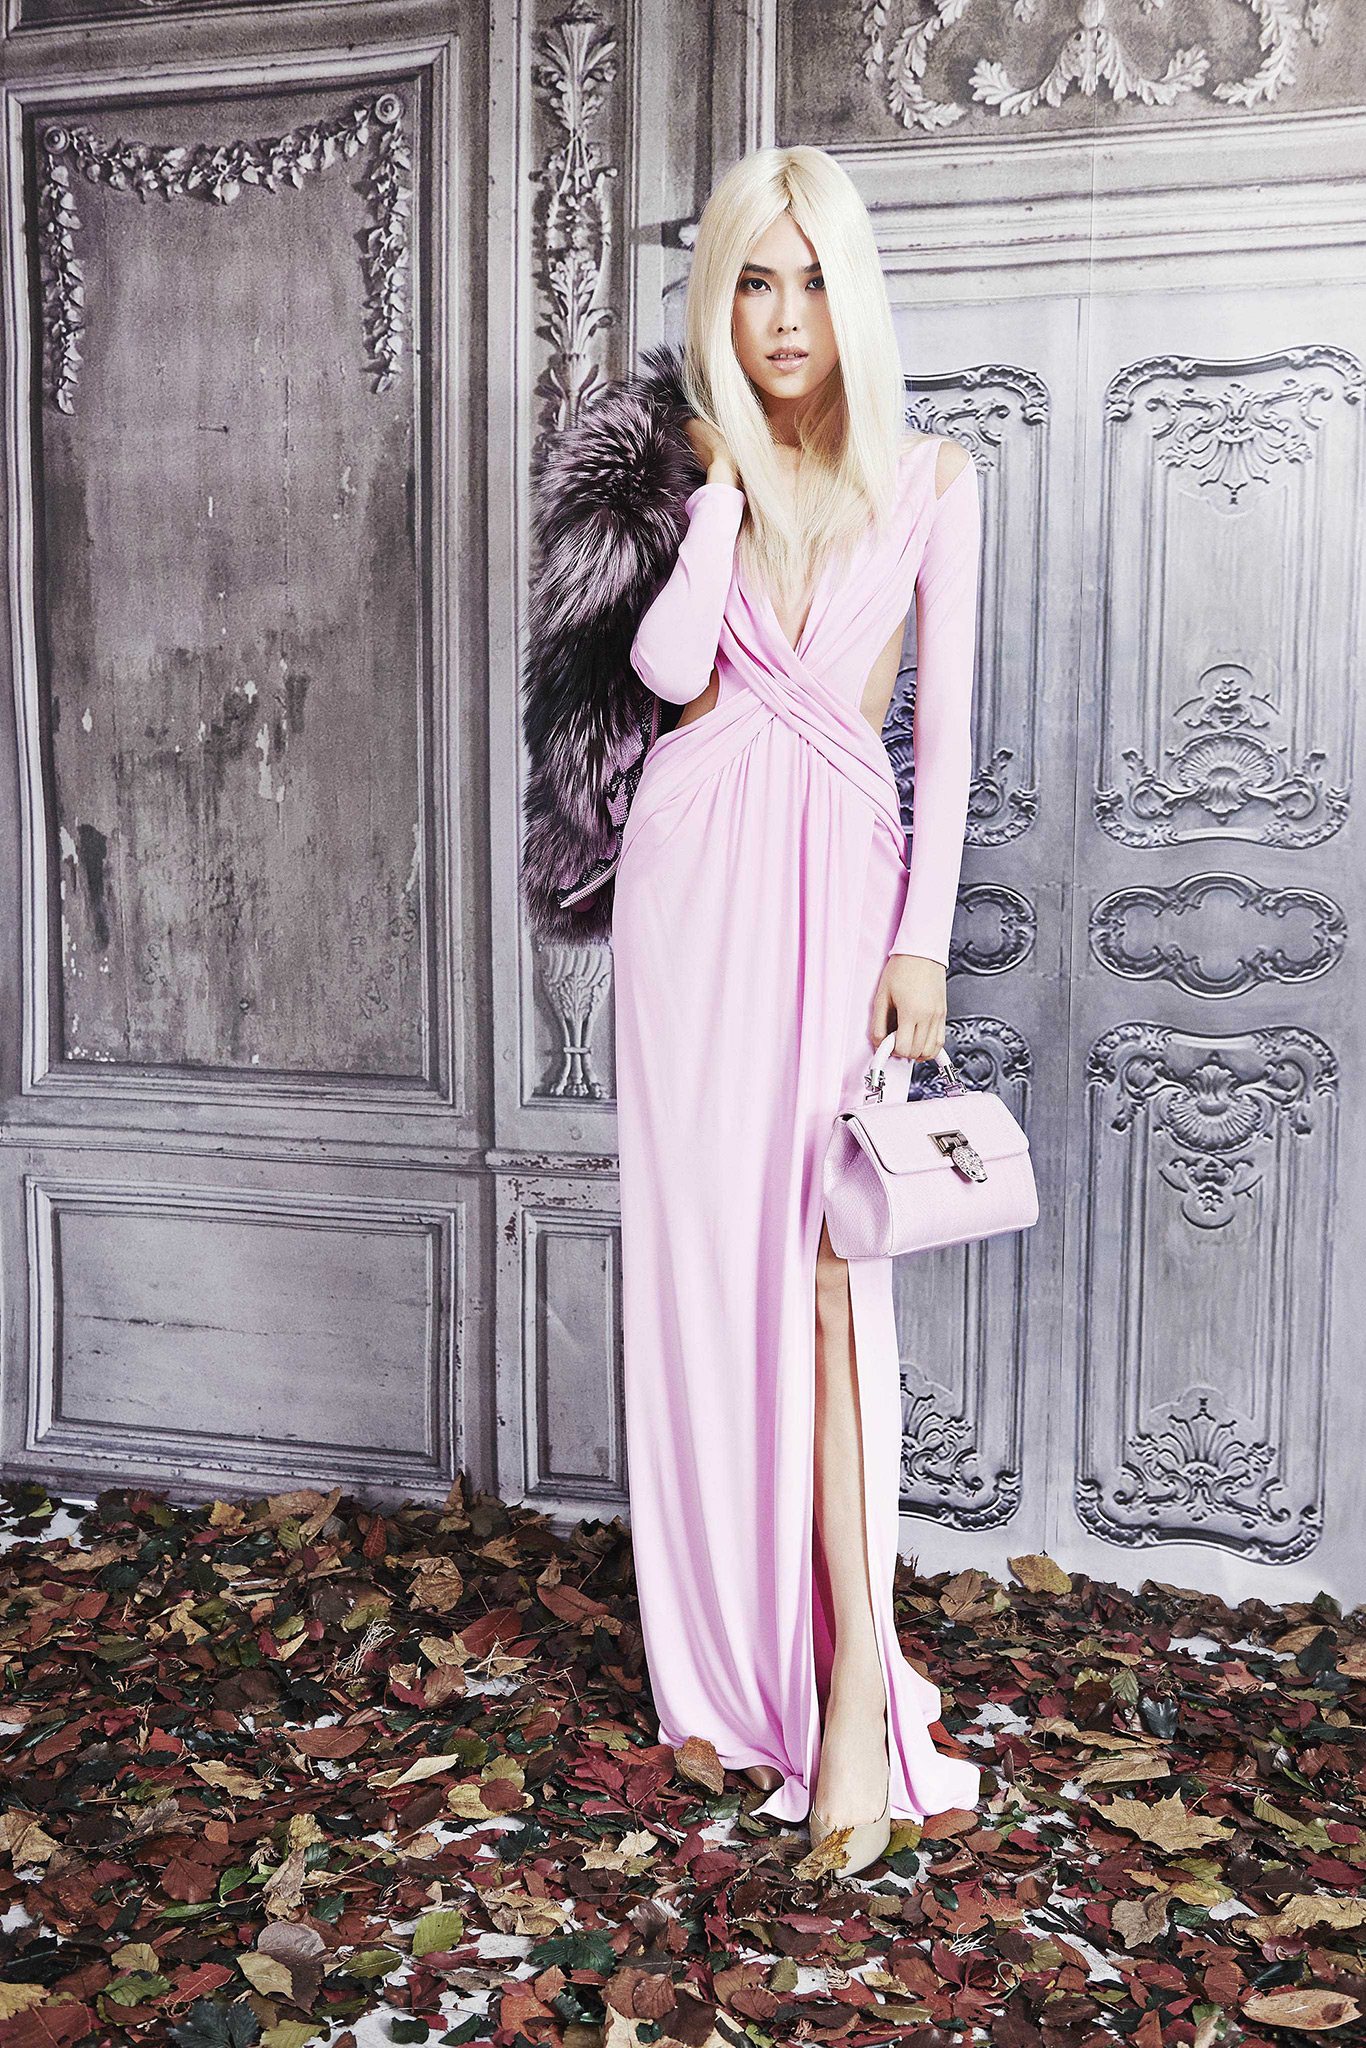 Fascinating Pre-Fall Collection By Phillipp Plein for 2015